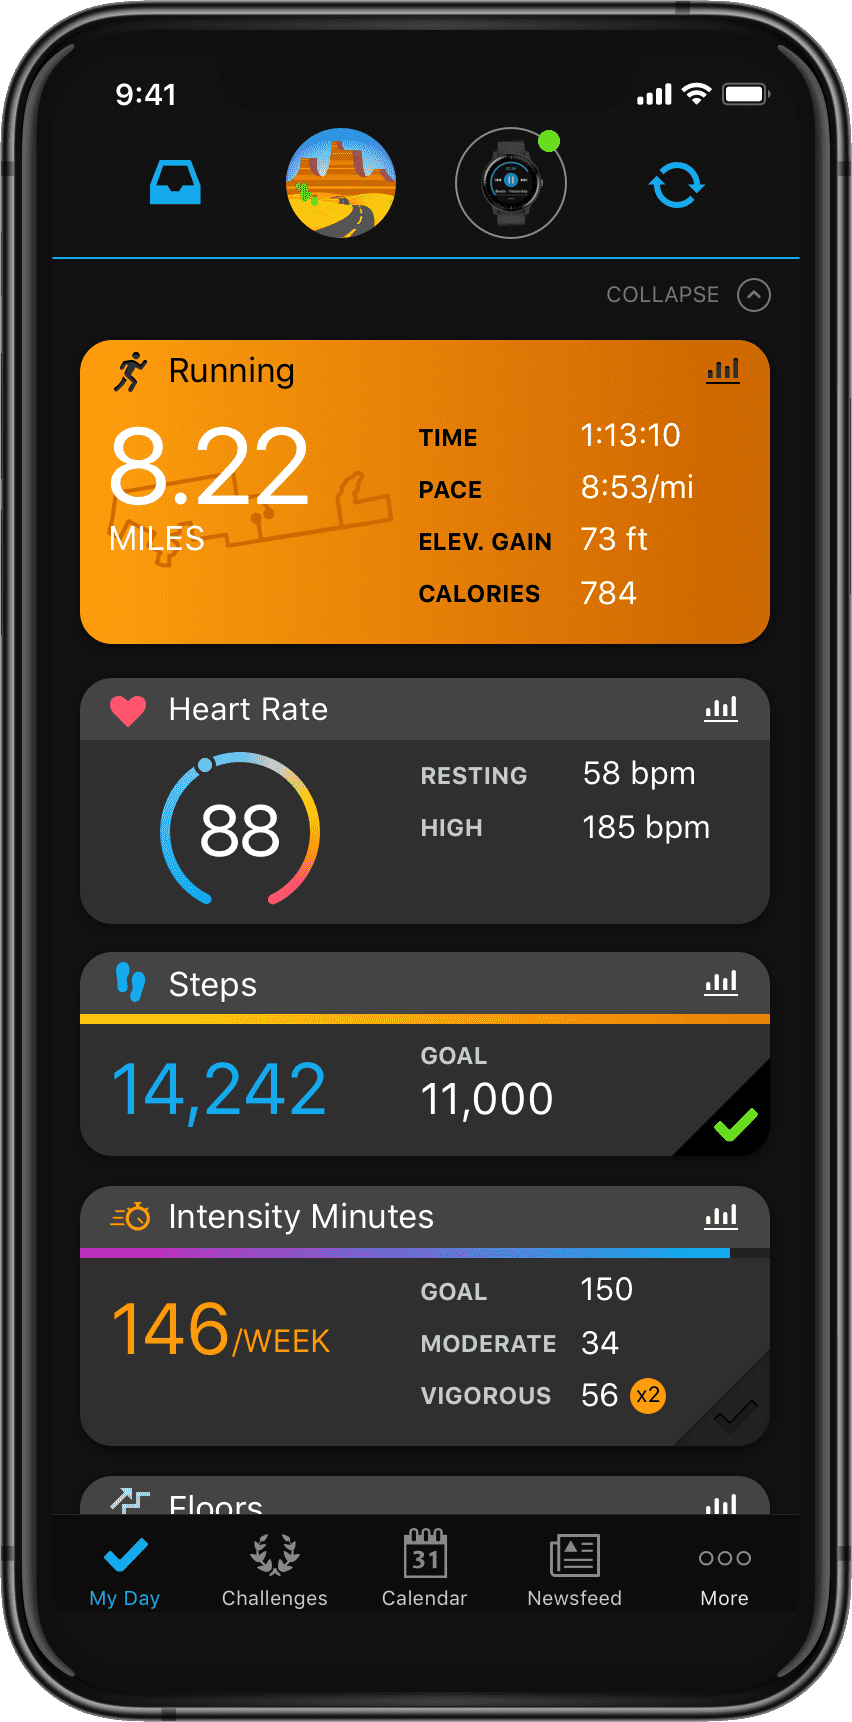 Garmin Connect Mobile App >> Garmin Connect Free Online Fitness Community